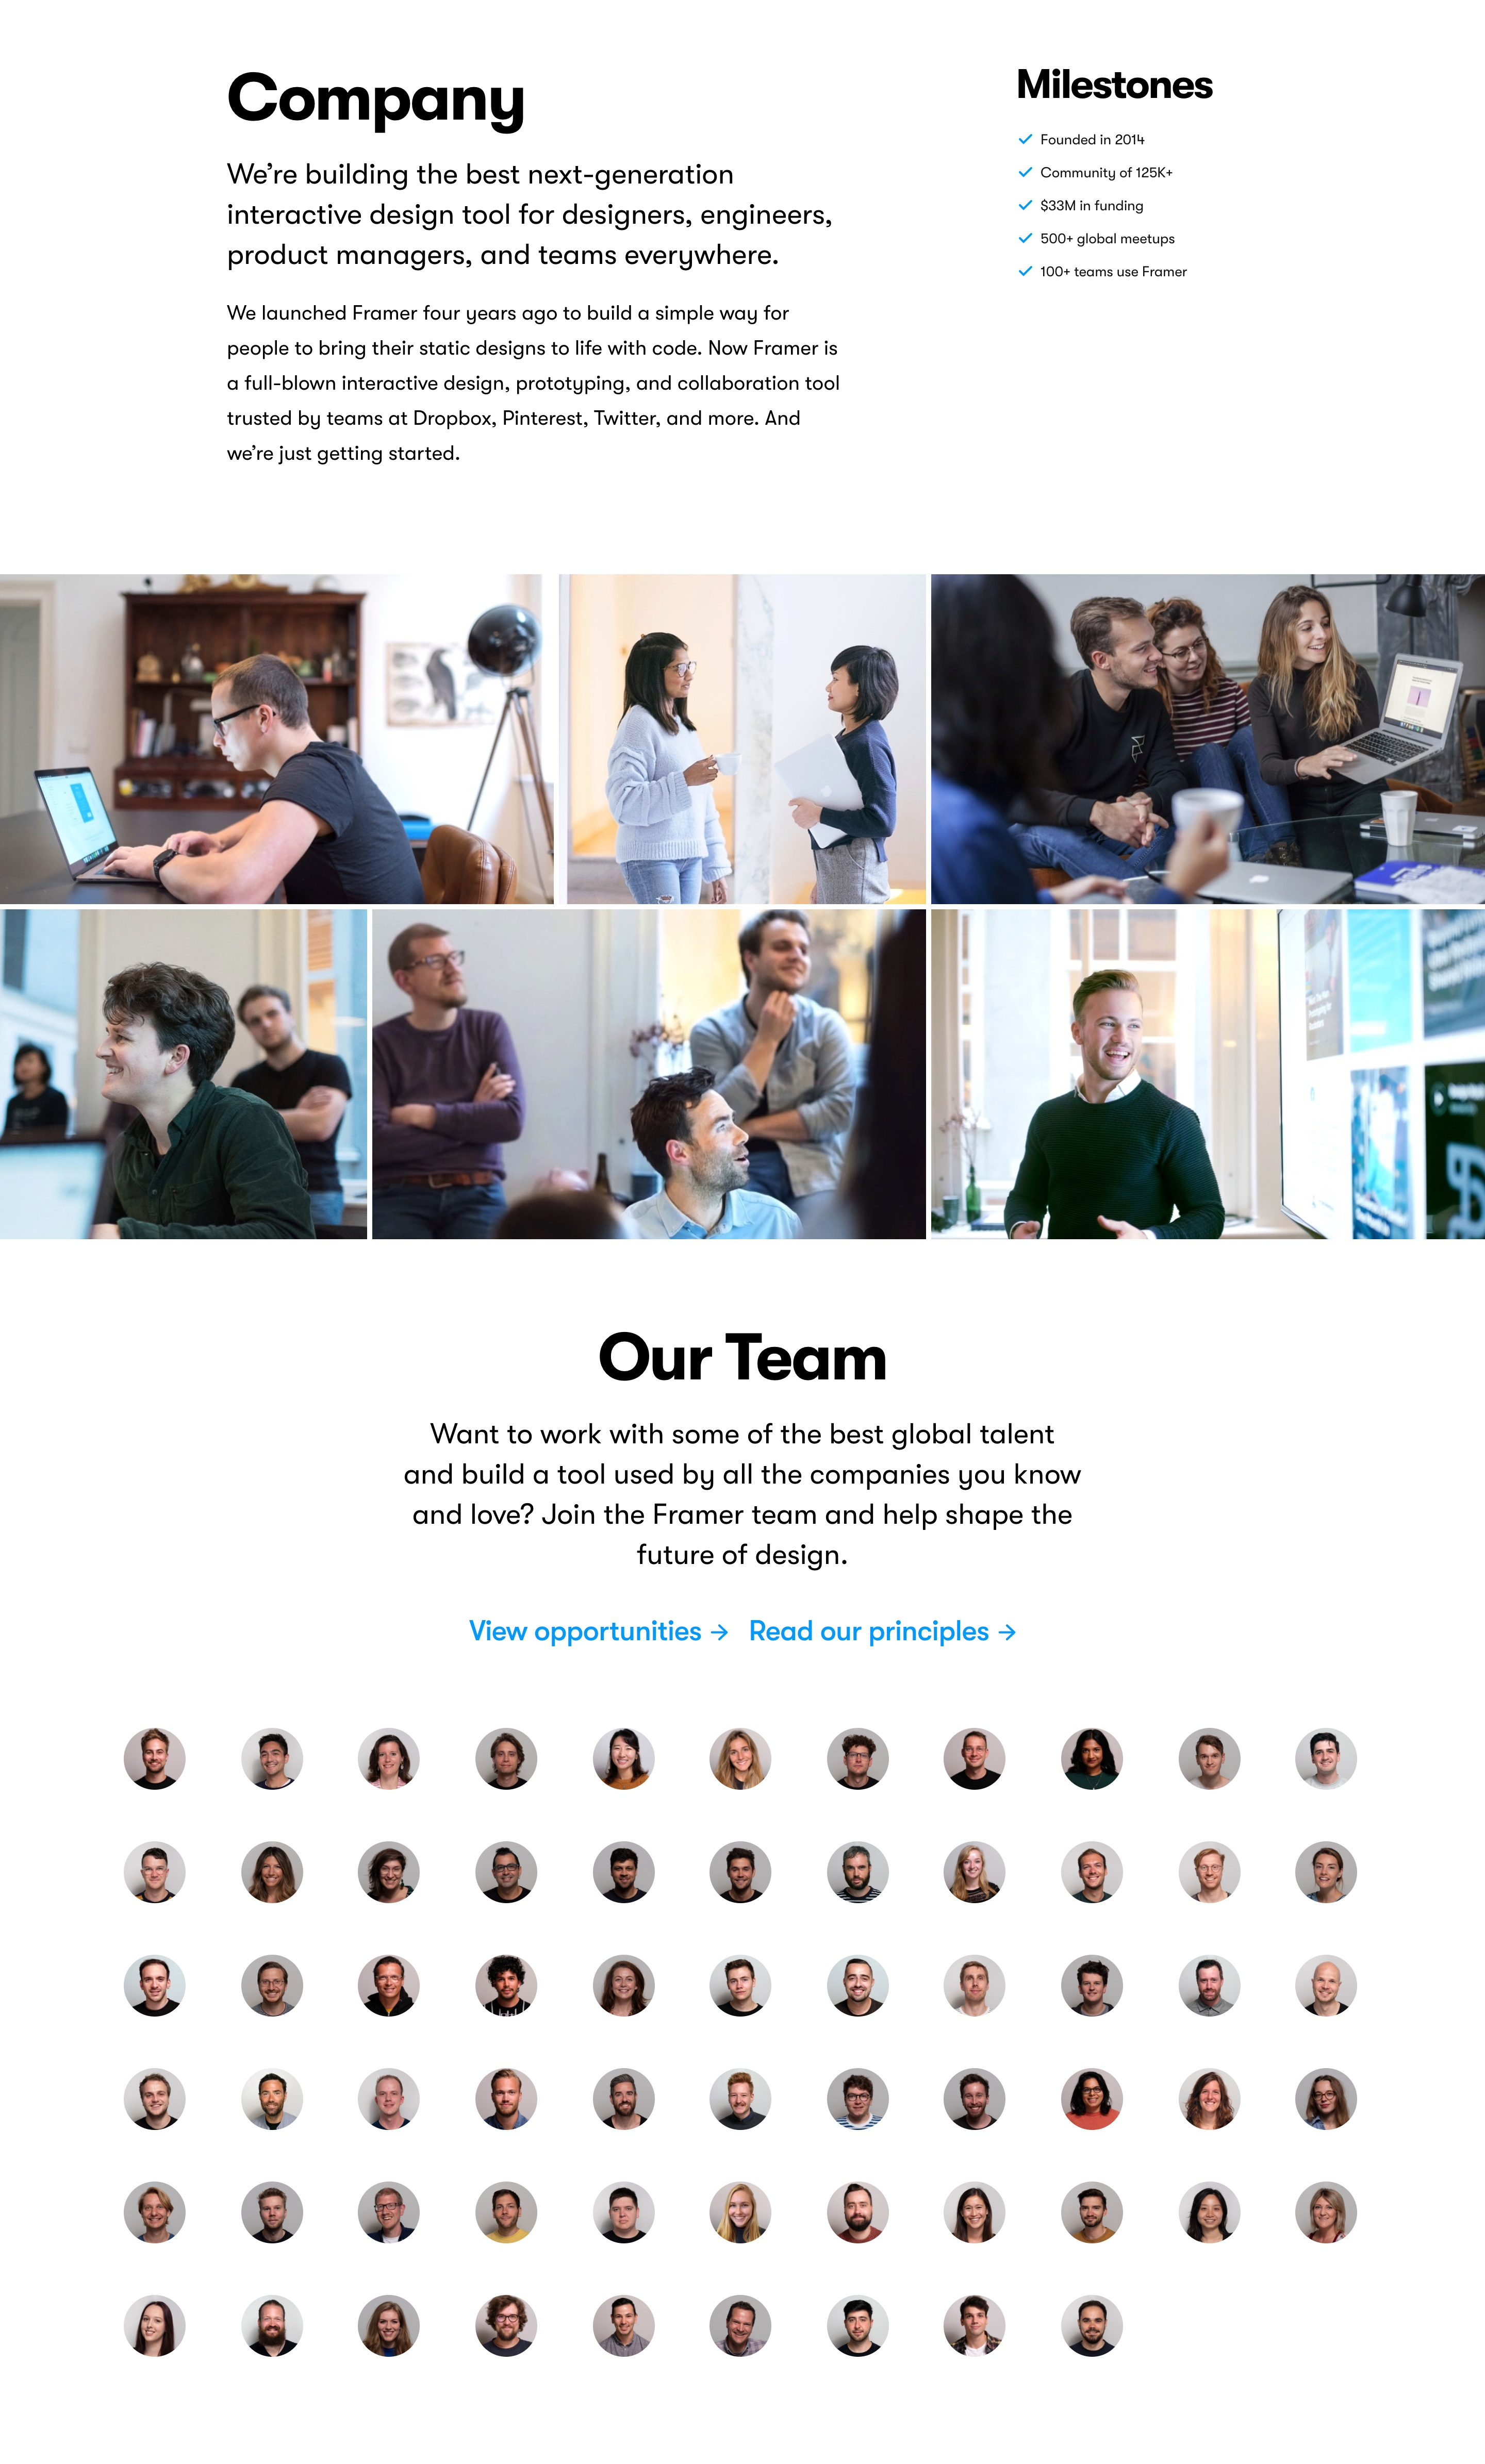 Company Page with Mission, Photo Gallery & Team Members